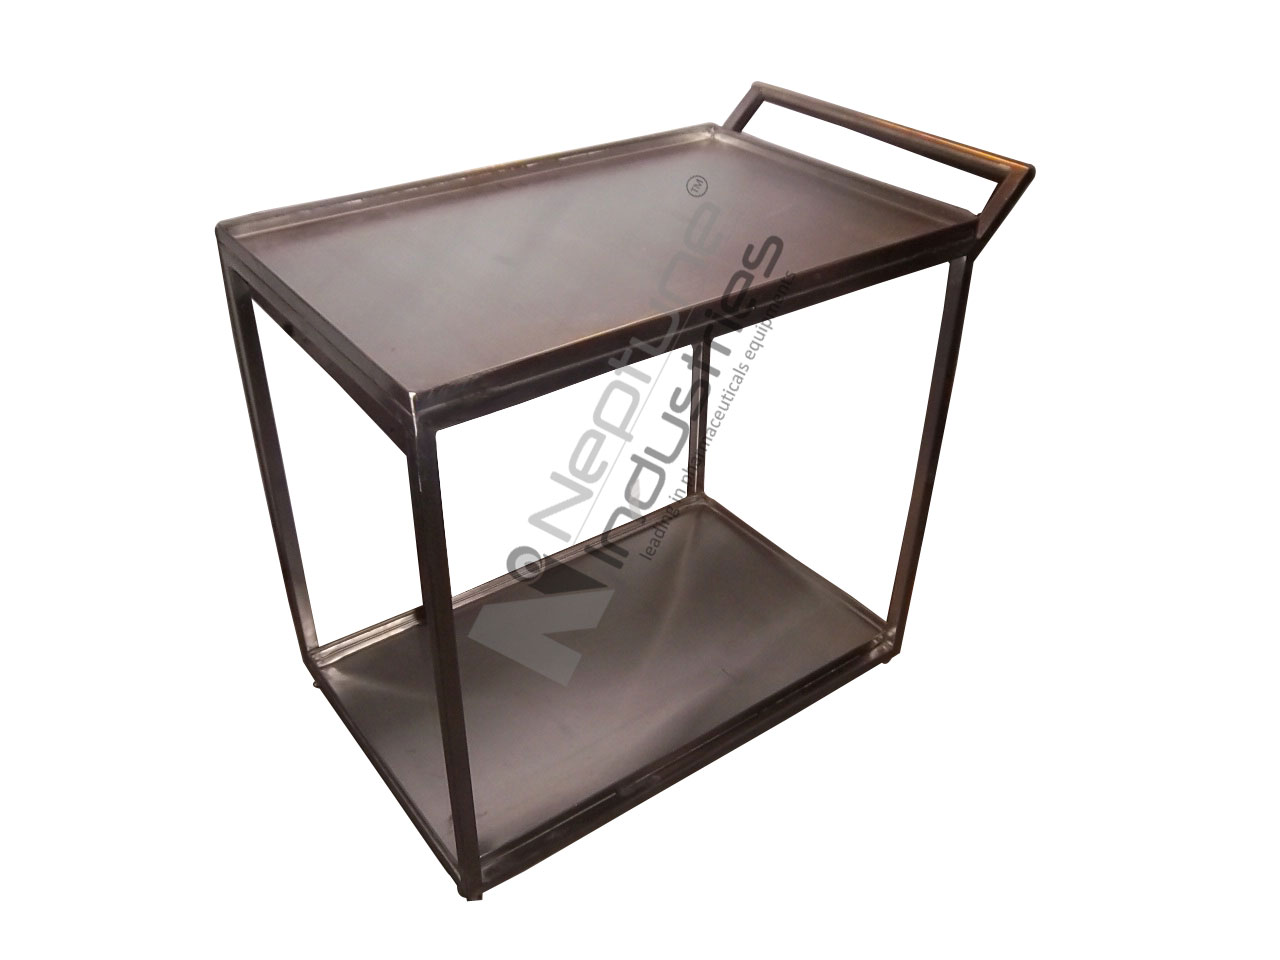 Pharmaceutical Steel Furniture Stainless Steel Equipment Manufacturer India